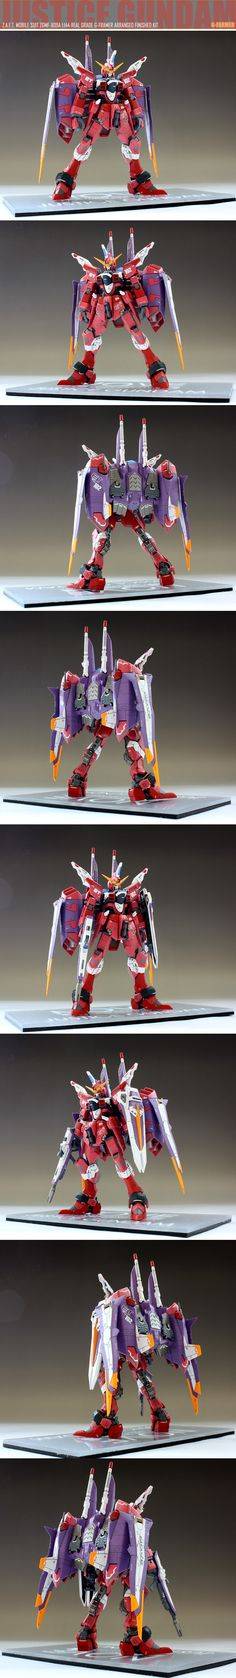 RG 1/144 Justice Gundam G-Farmer Arranged Finished Kit: Full Photoreview [WIP too] Many Images!